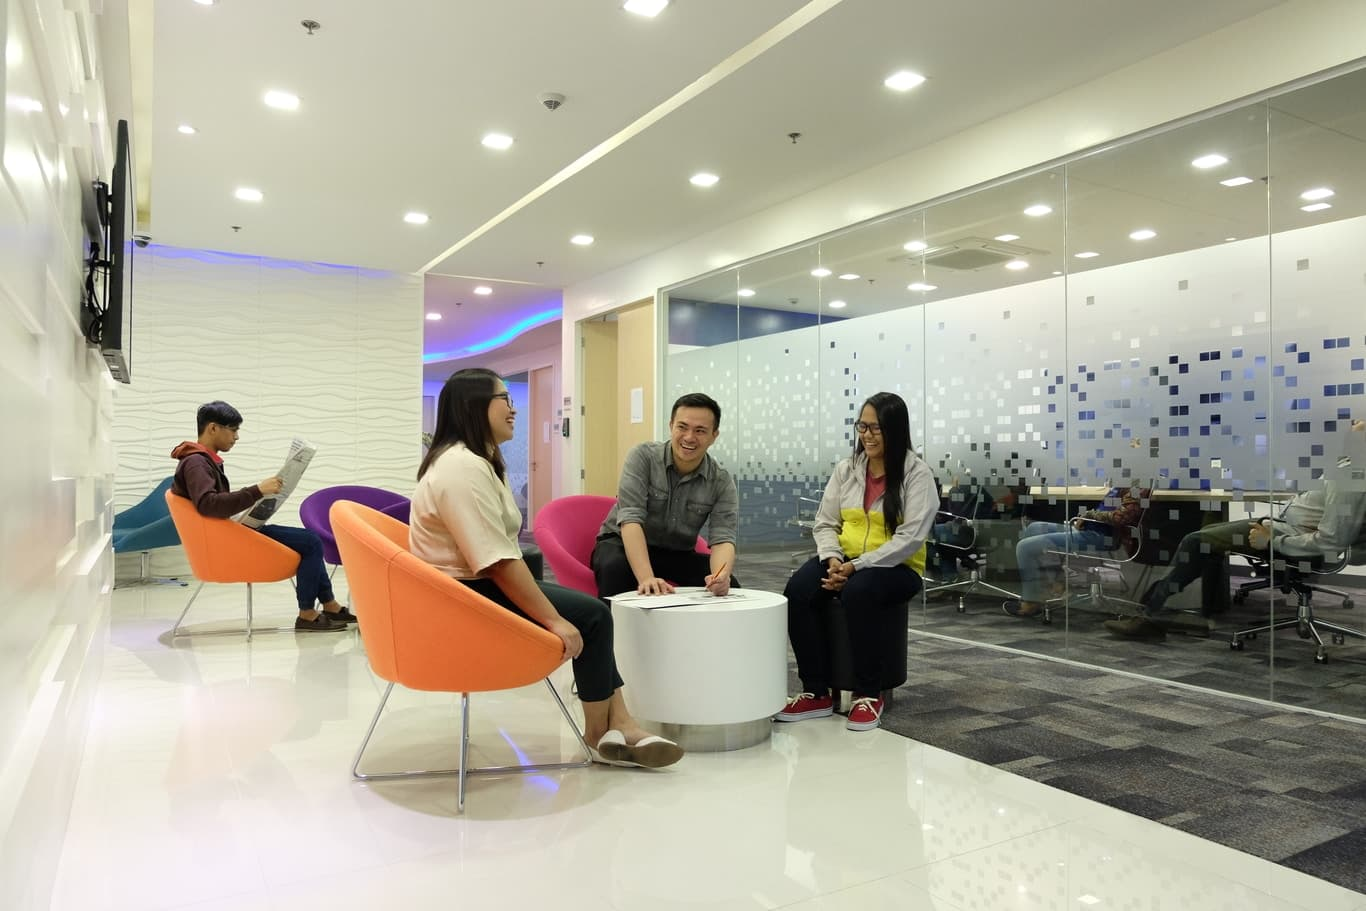 SM Aura Common Area 1.jpg